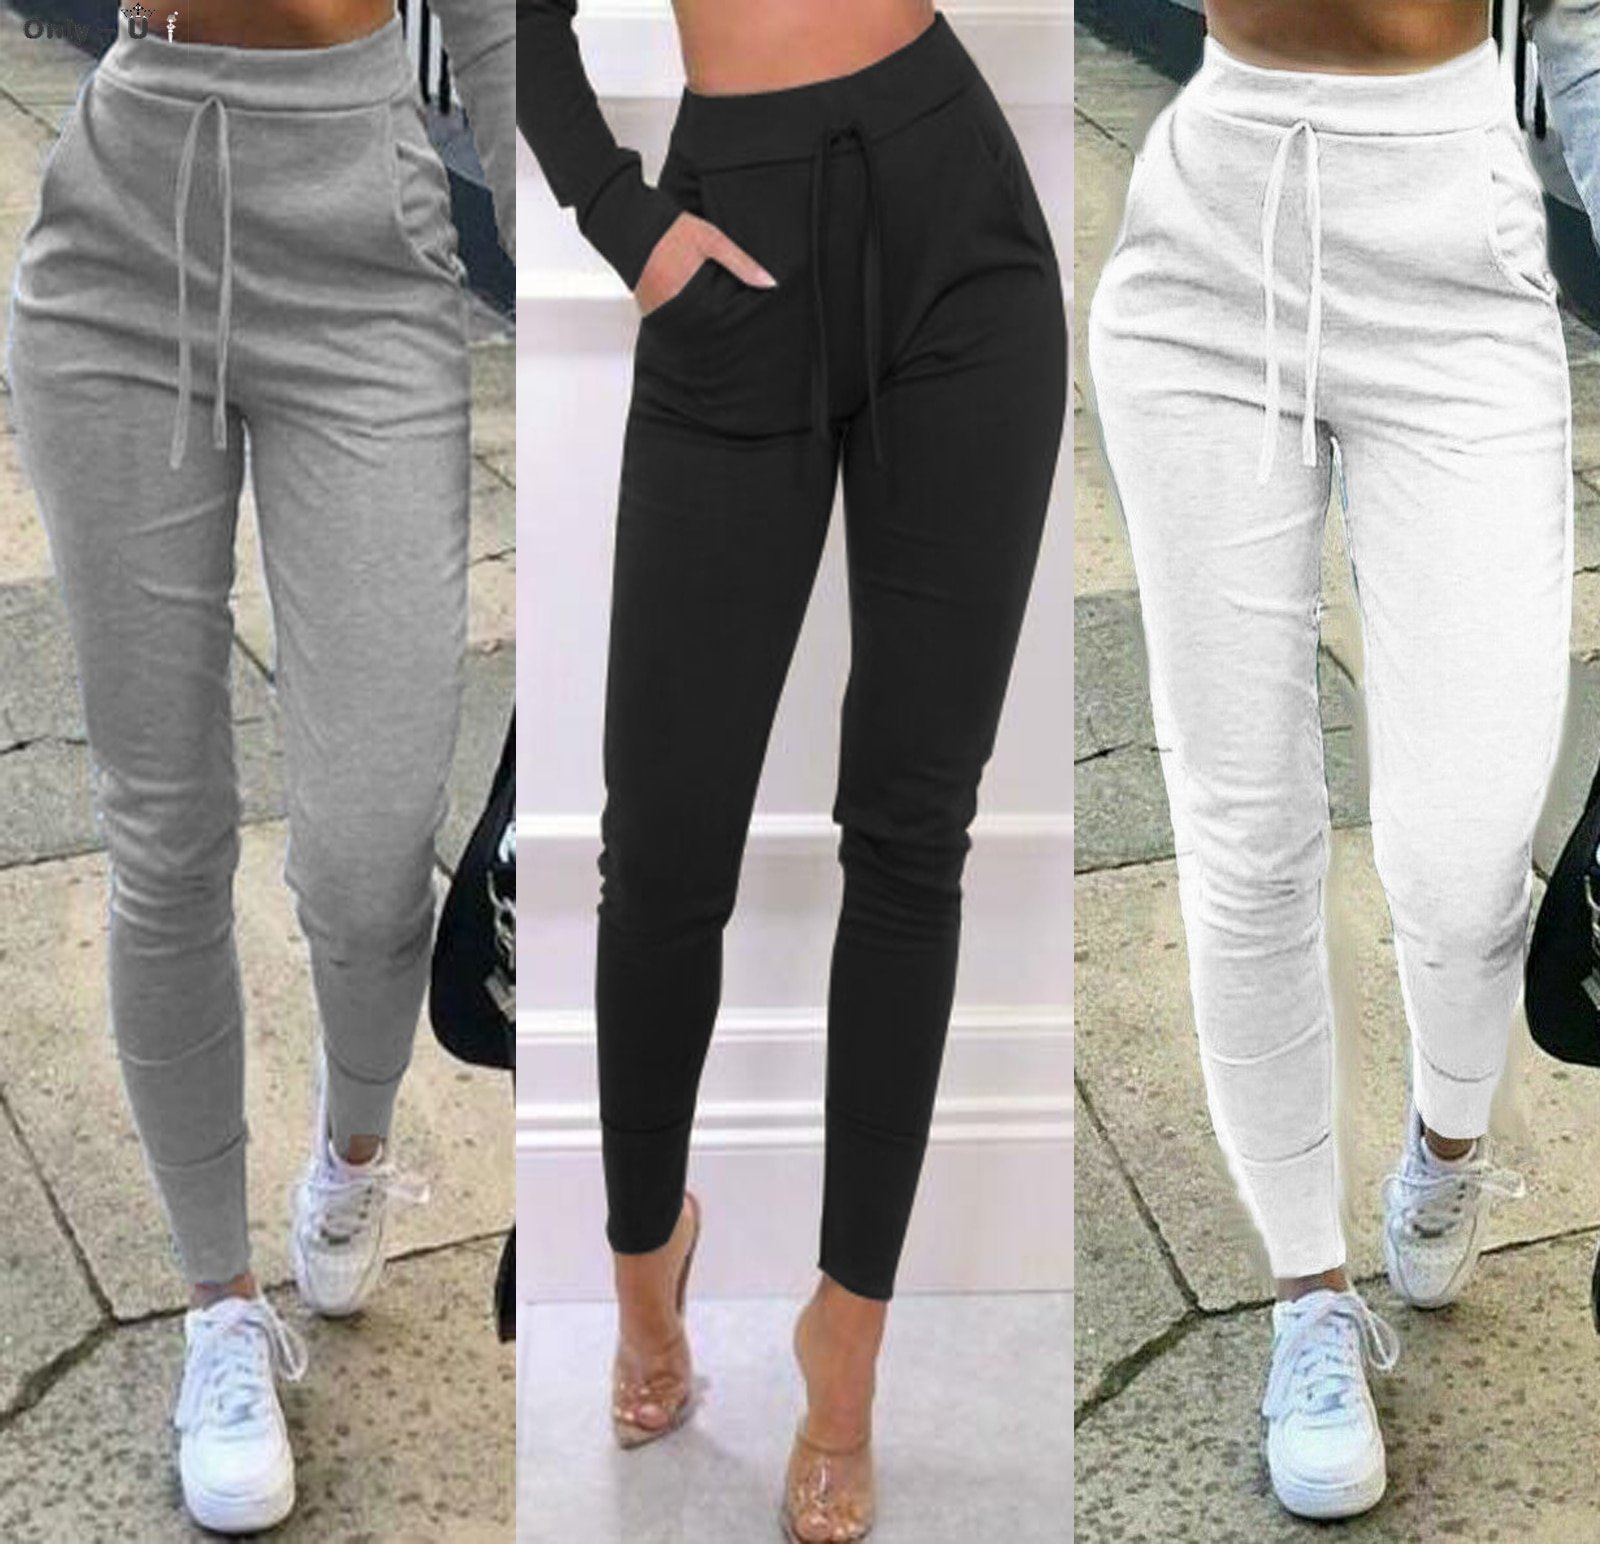 2020 New Arrivals Women's Pants Jogger Casual Solid Color Sport Pants Elastic Waist Ankle Cuff Tight Sweatpants with Pocket